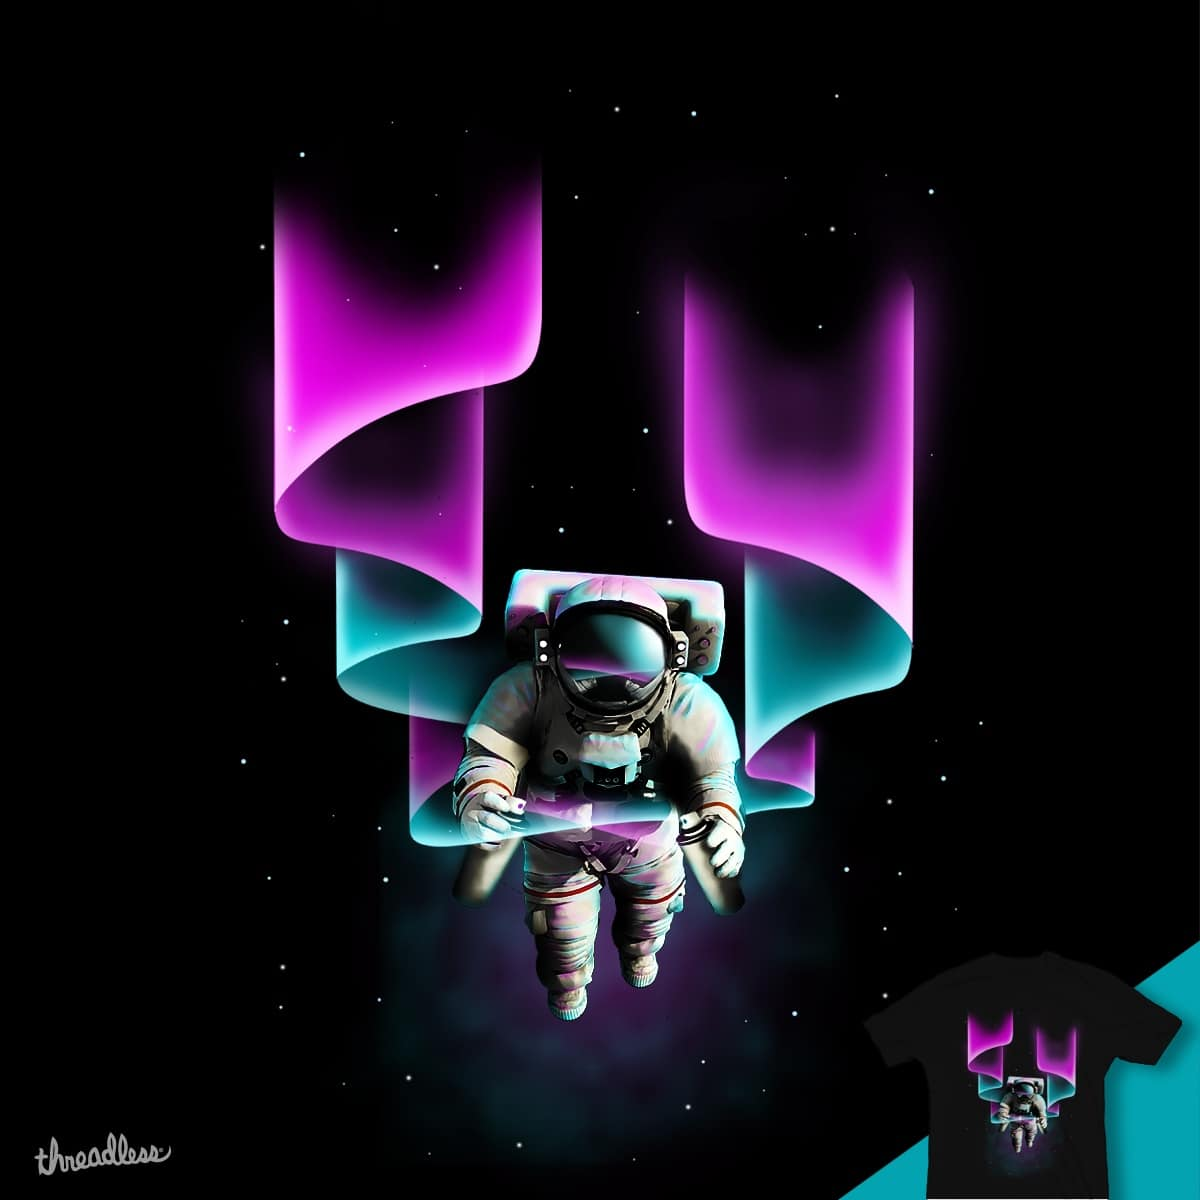 Painting space by wimadeputra on Threadless